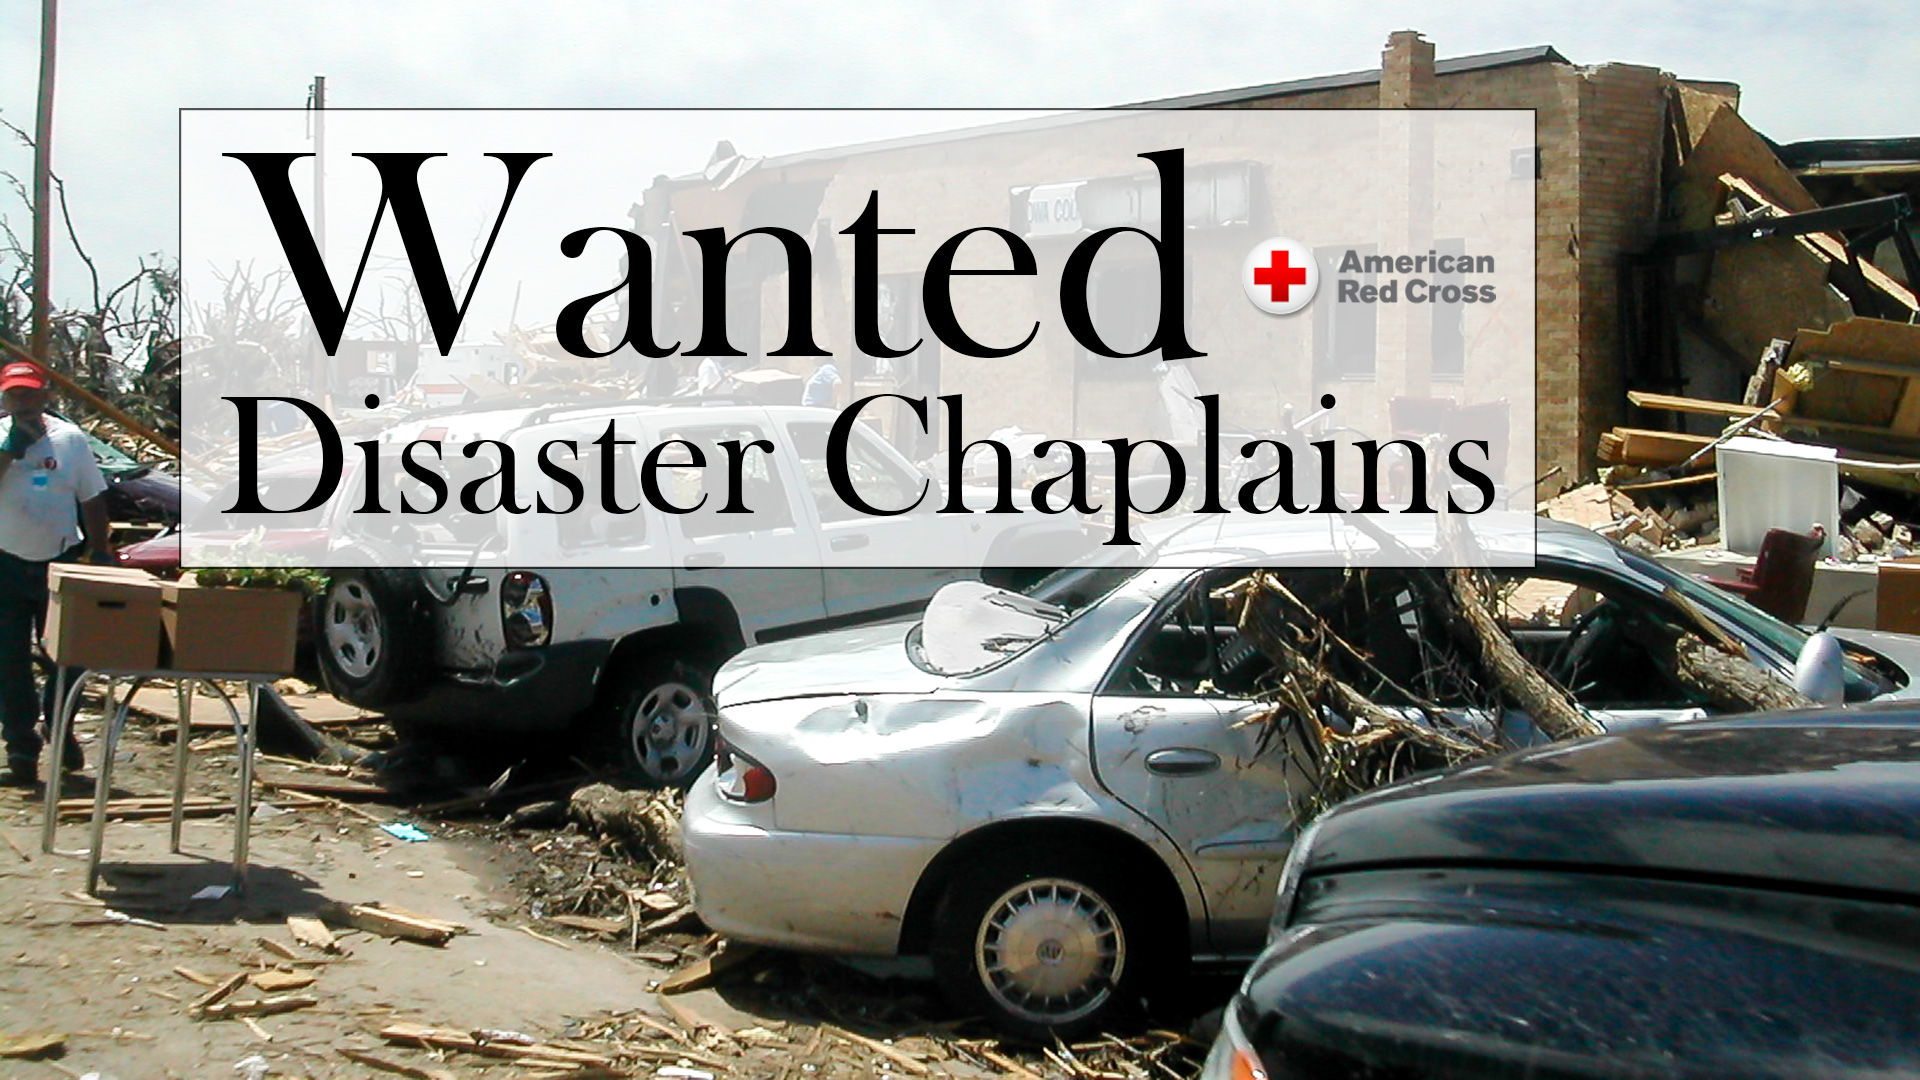 American Red Cross needs Disaster Chaplains, ordination is not required, Spanish speakers needed. Can you help?